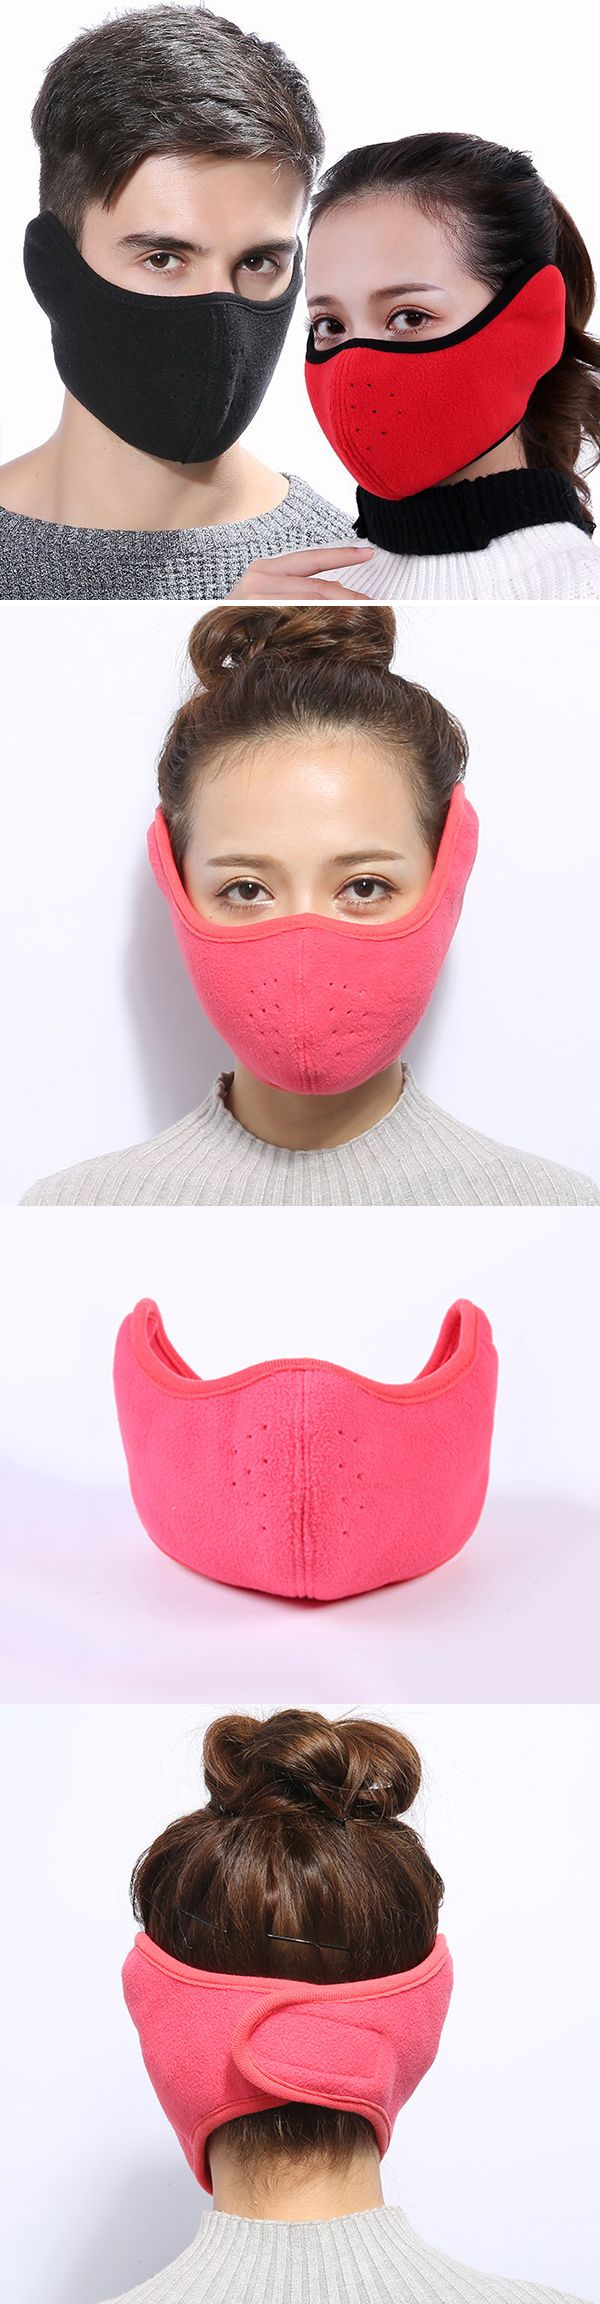 Men&Women Cotton Reusable Mouth Mask: Dustproof /Multiple Colors #outdoors #outfits